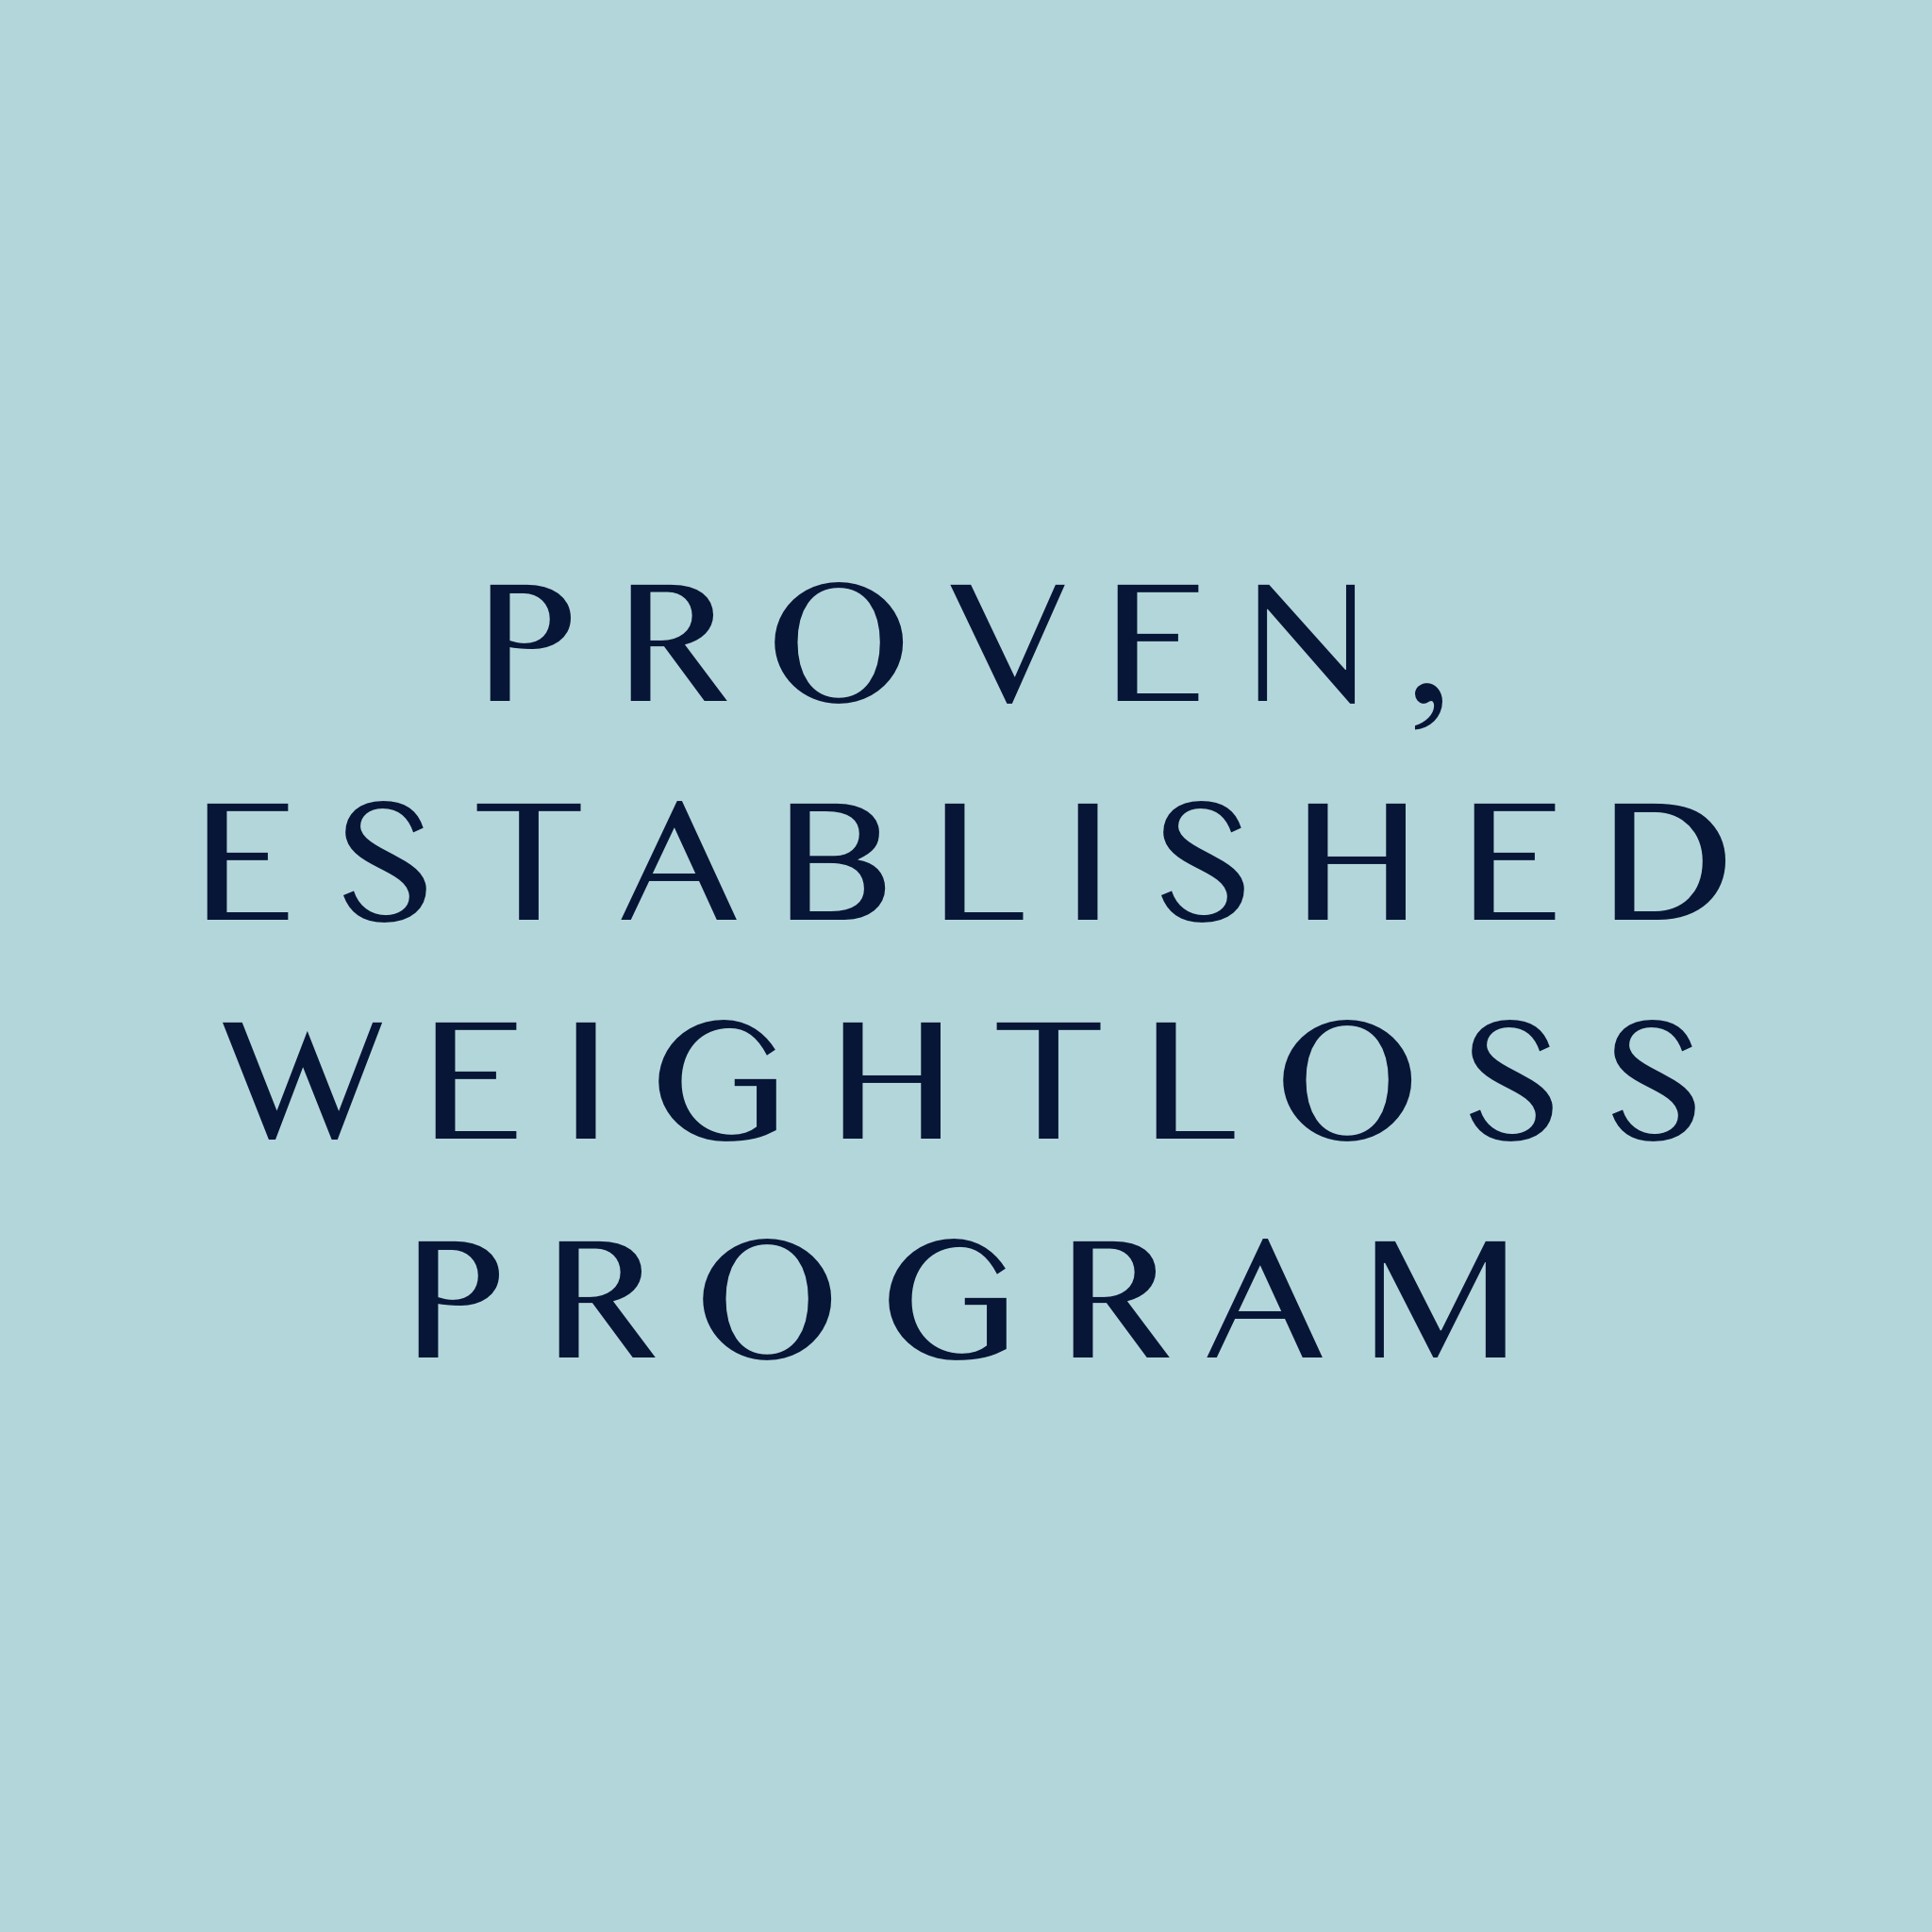 proven established effective weightloss program